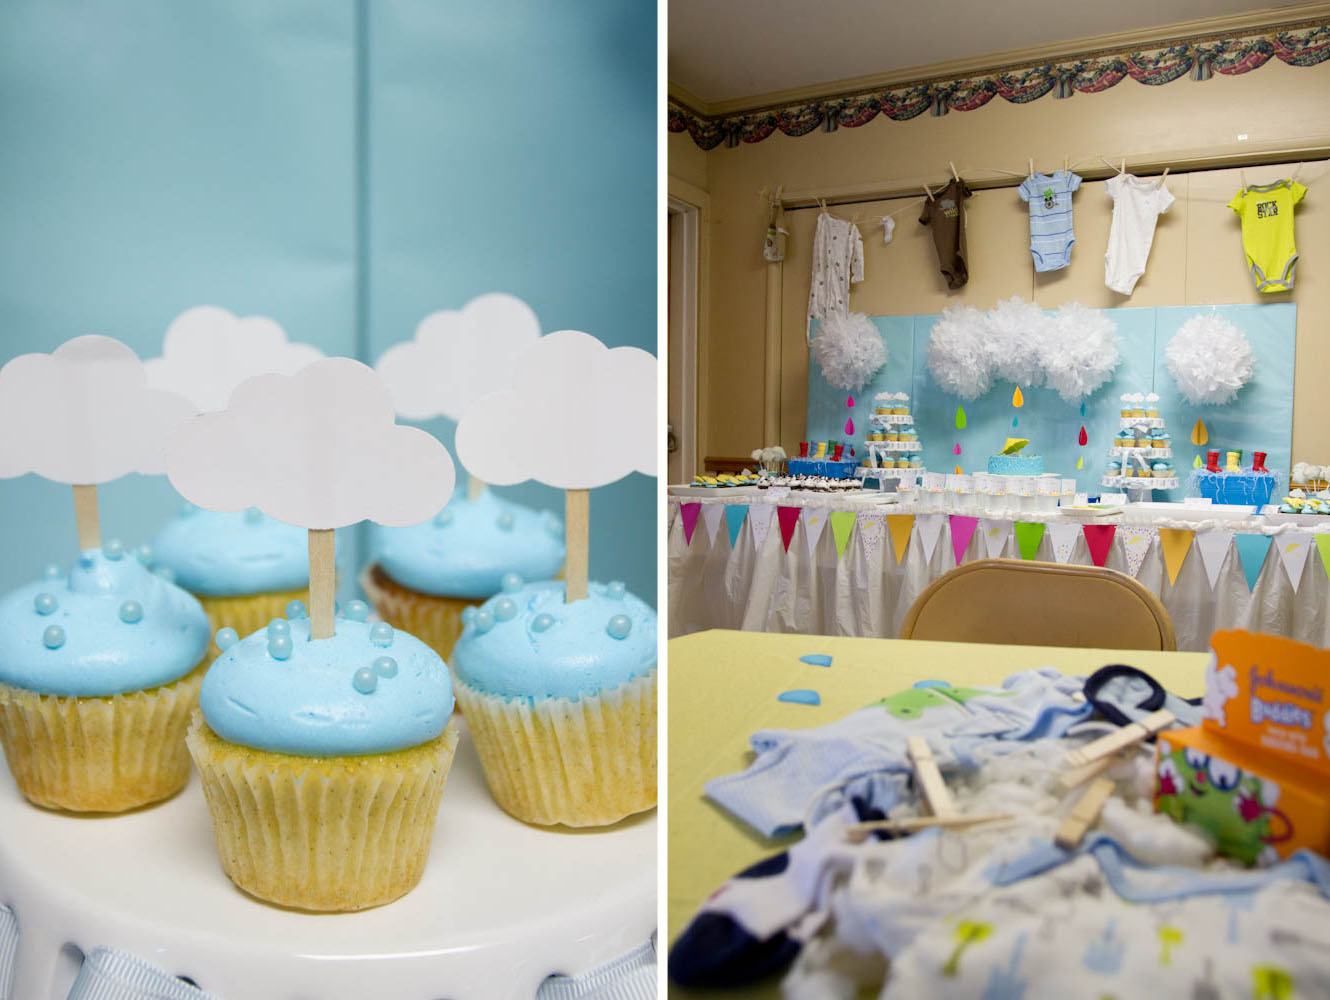 april showers cupcakes with clouds and clothesline